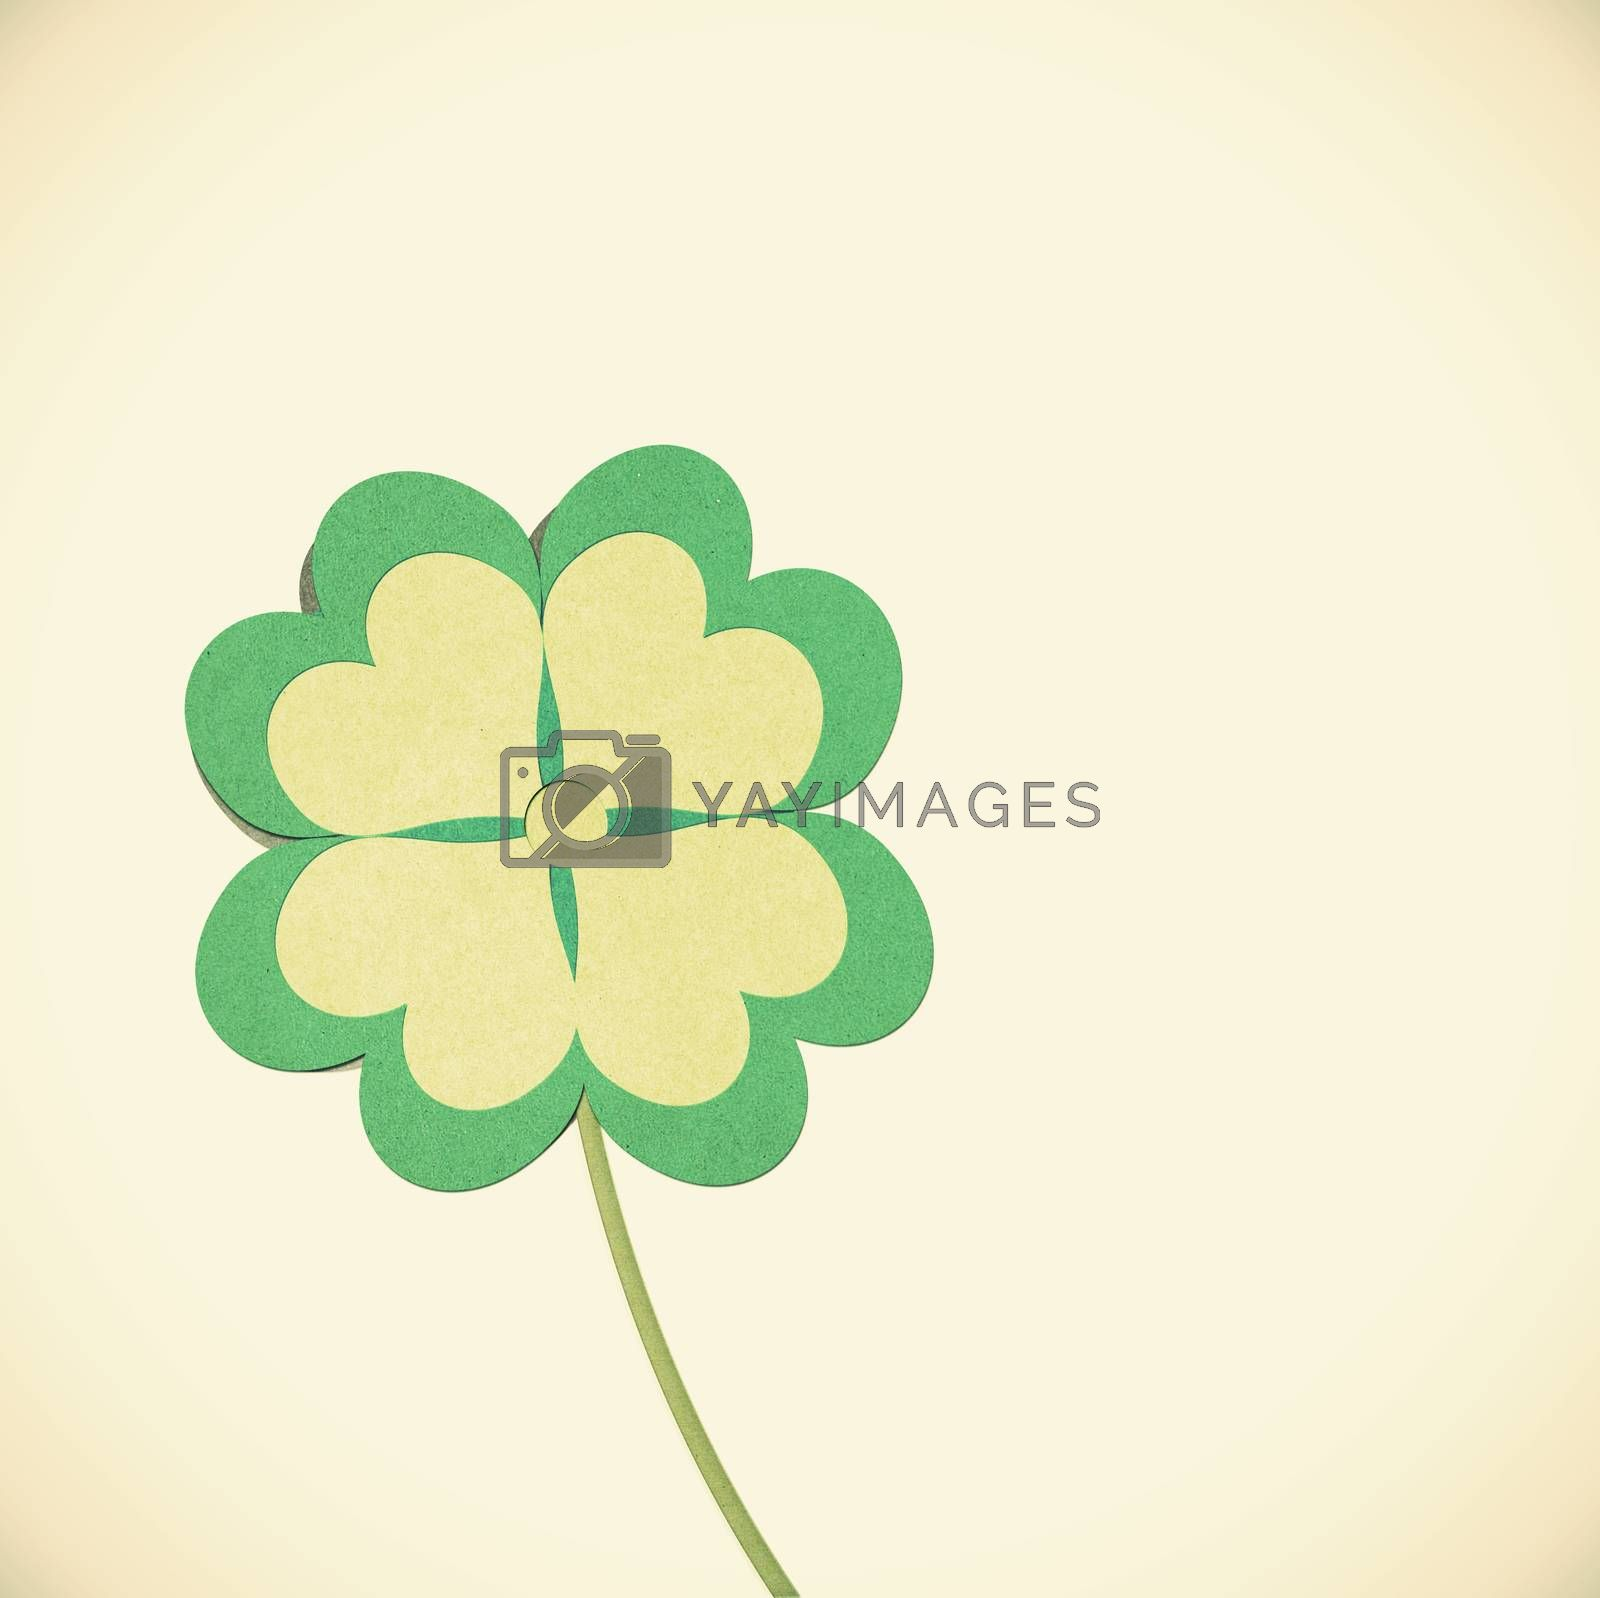 Old Paper texture clover with four leaves on vintage tone  backg by jakgree